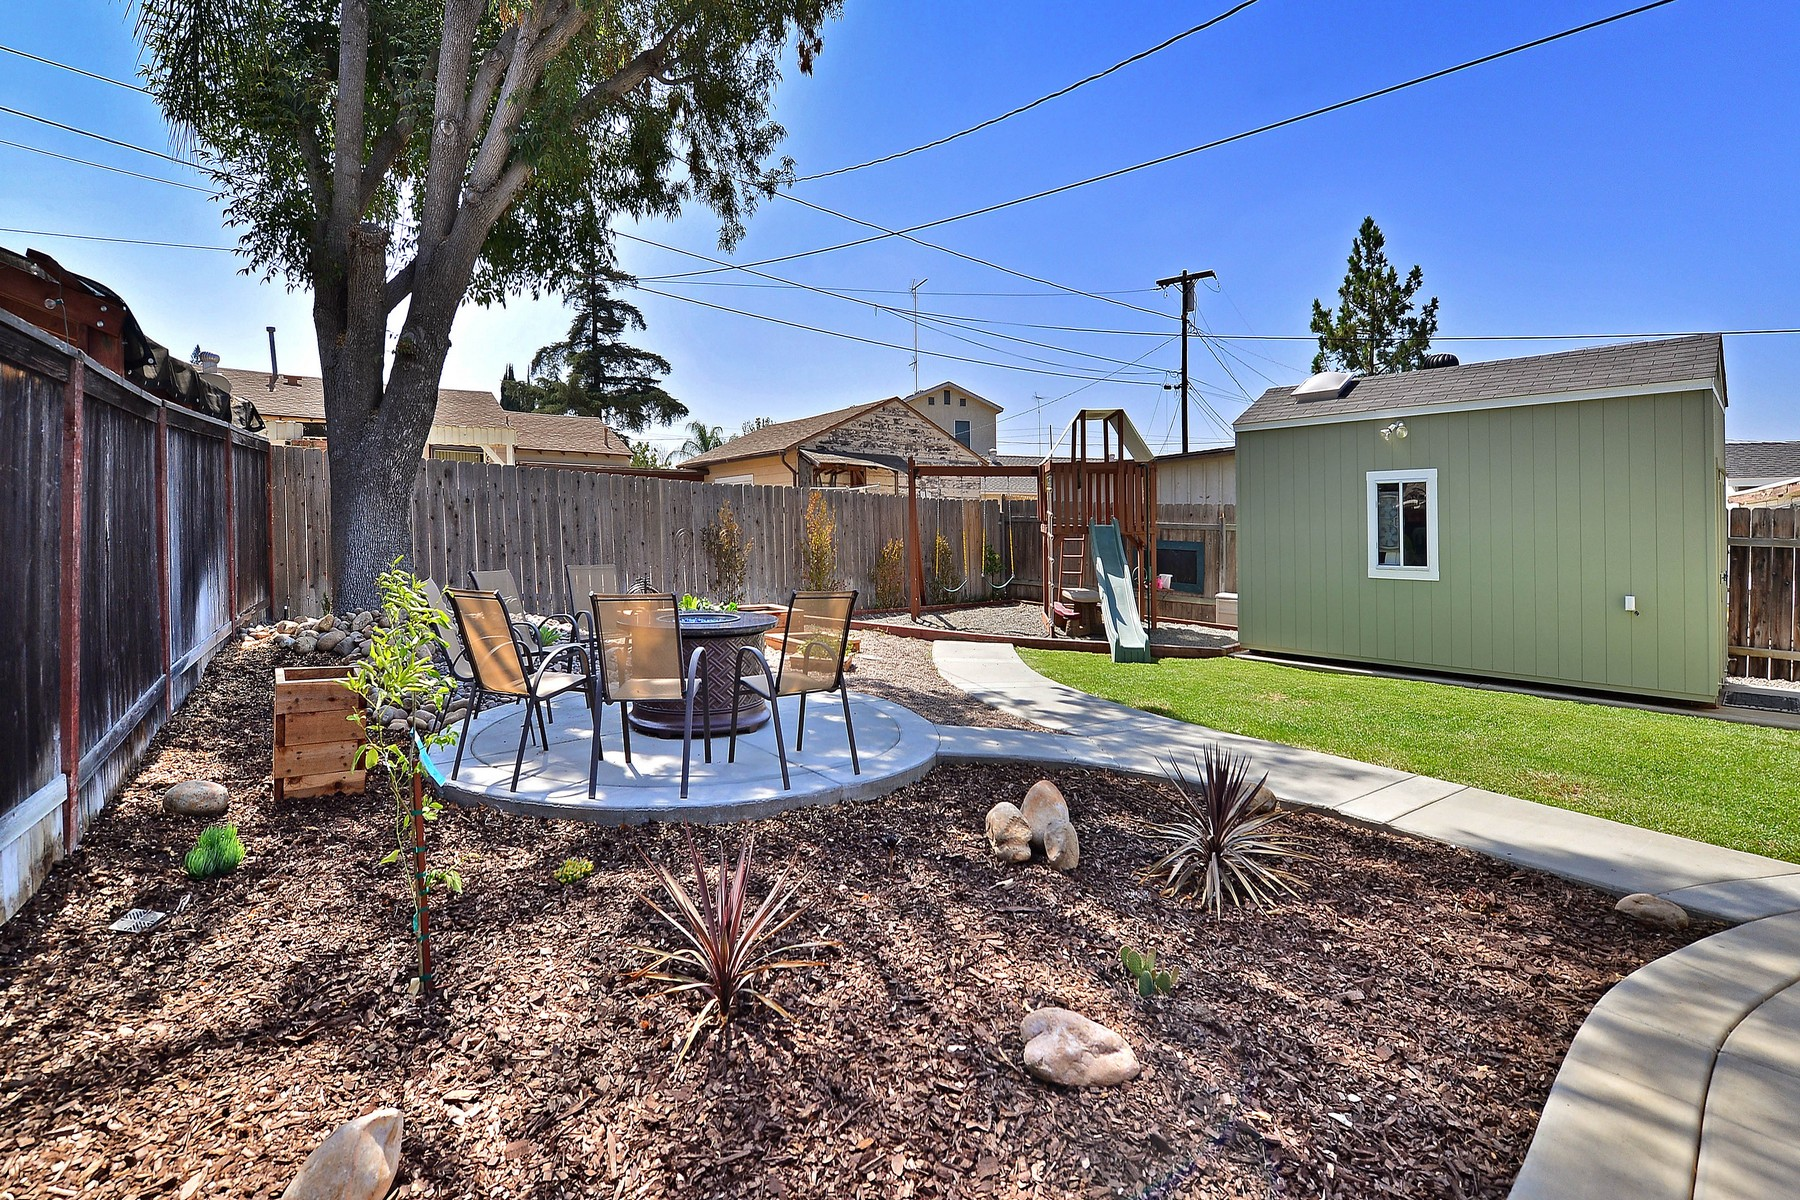 Additional photo for property listing at 2335 Charles Way  El Cajon, Californie 92020 États-Unis